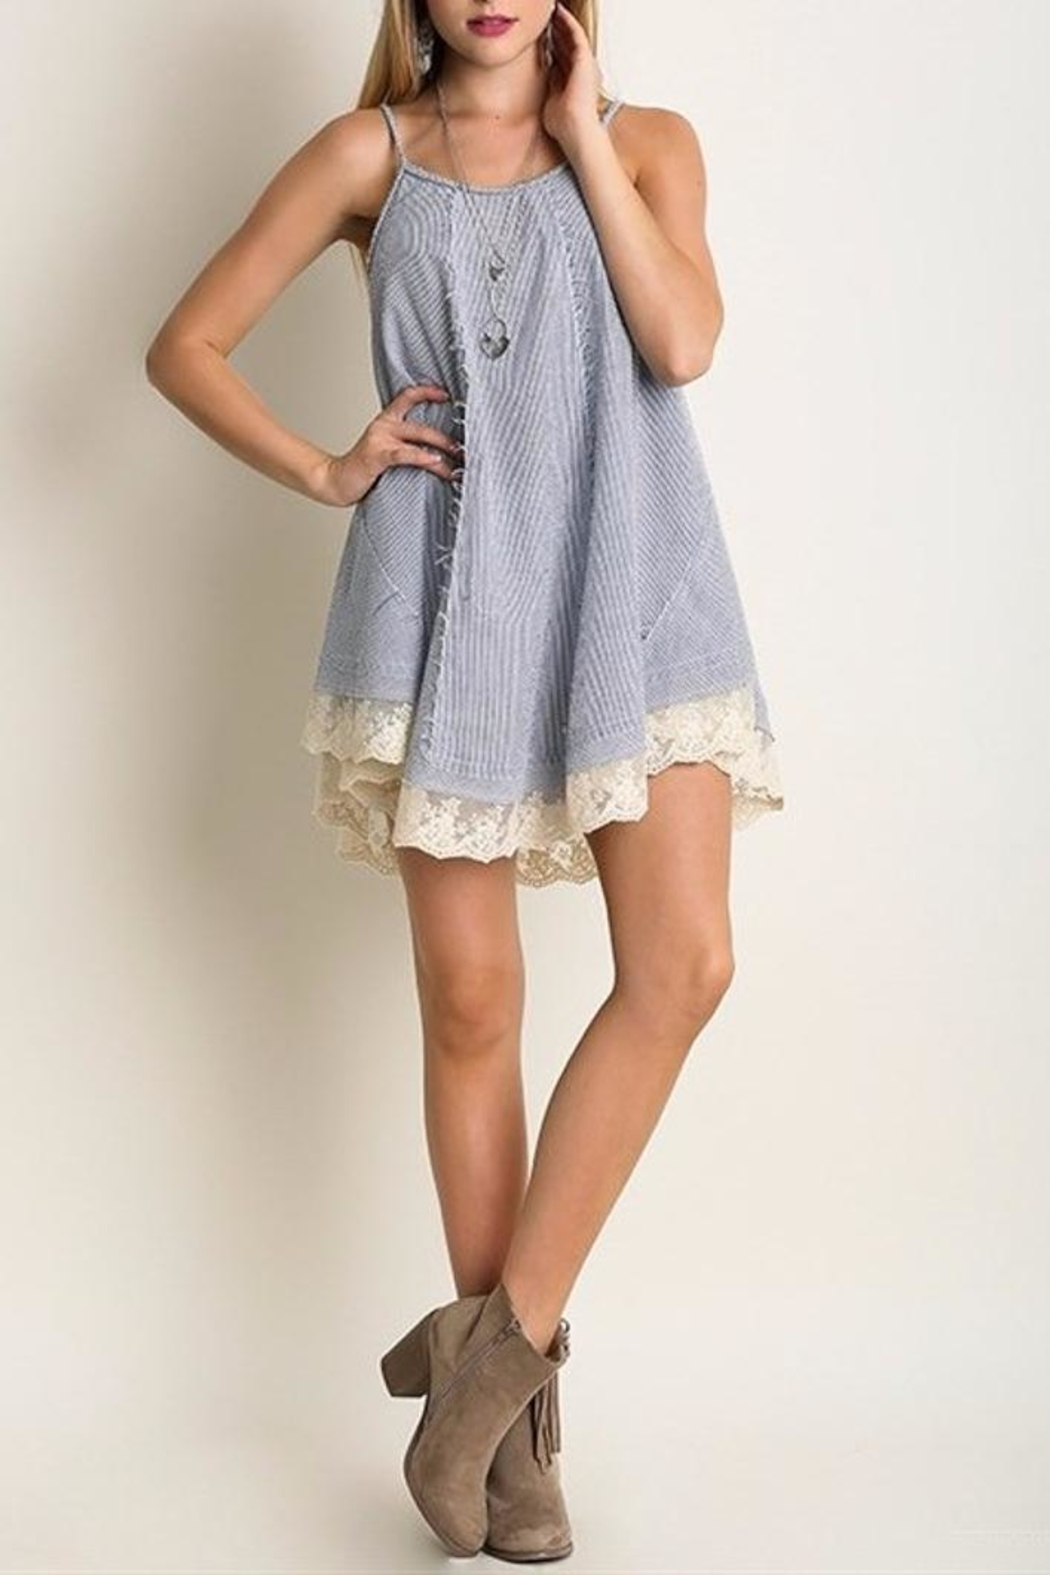 People Outfitter Brigitte Tunic Top - Main Image